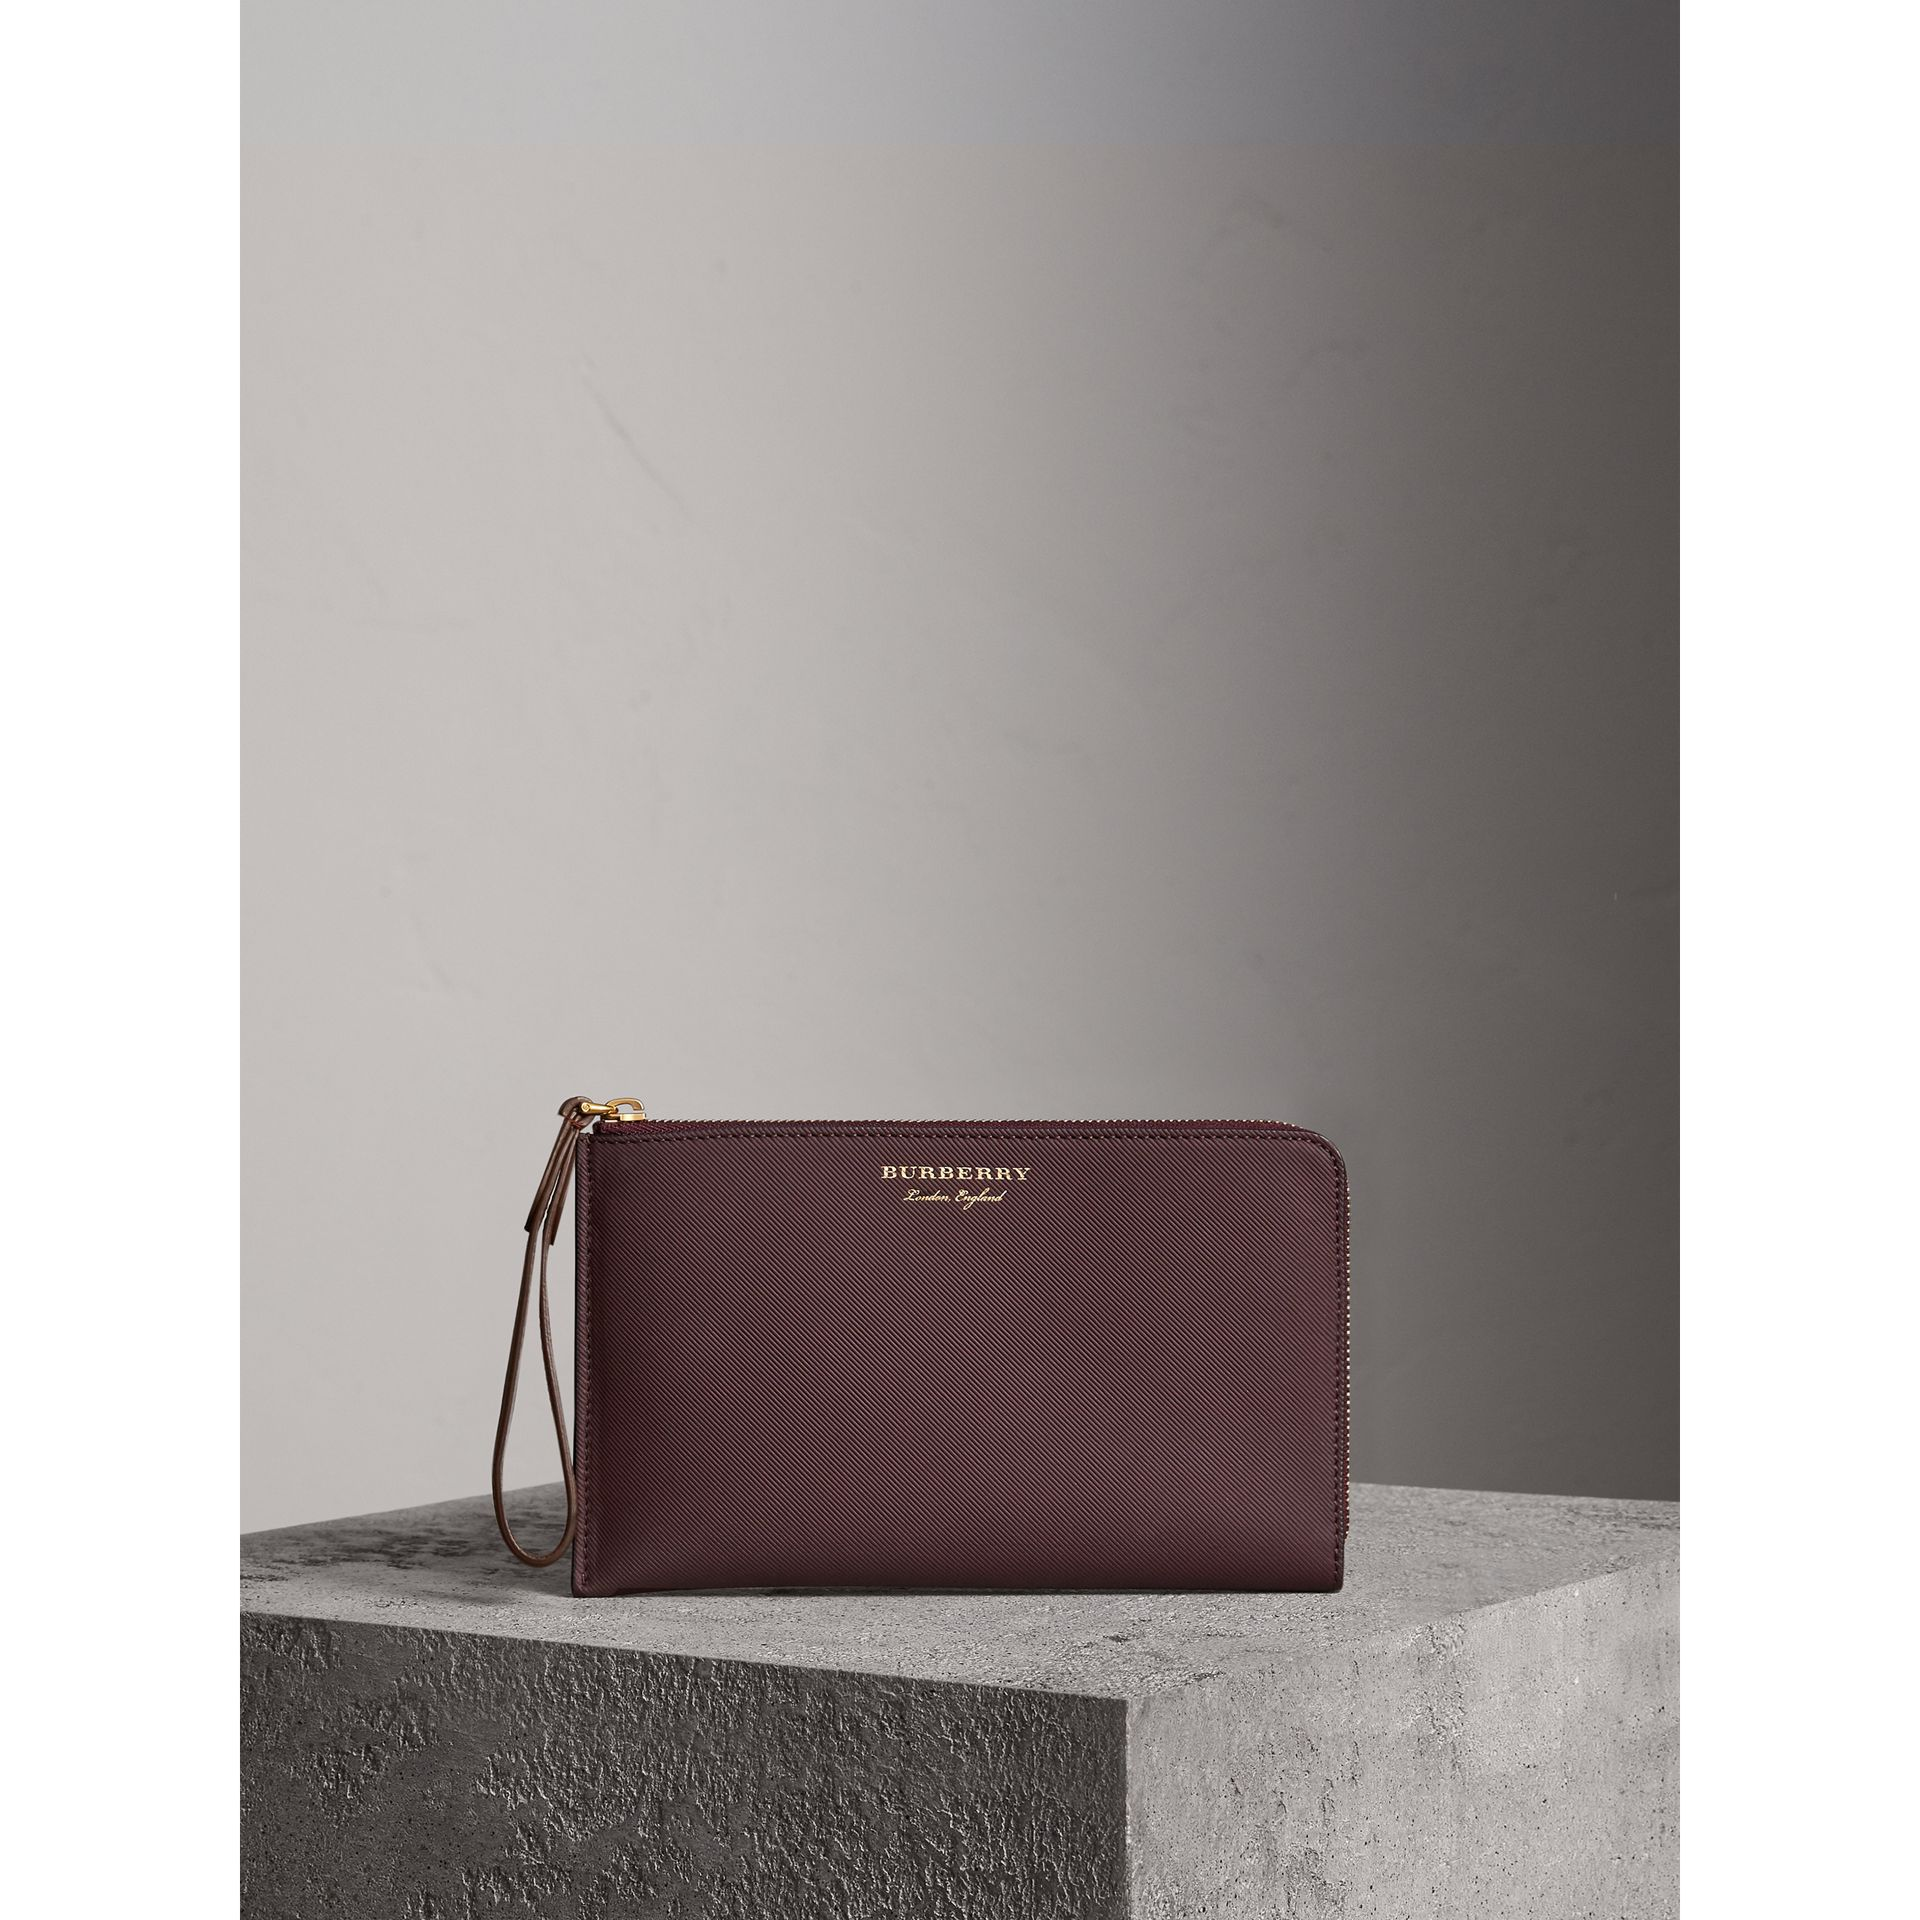 Two-tone Trench Leather Travel Wallet in Wine - Men | Burberry - gallery image 1